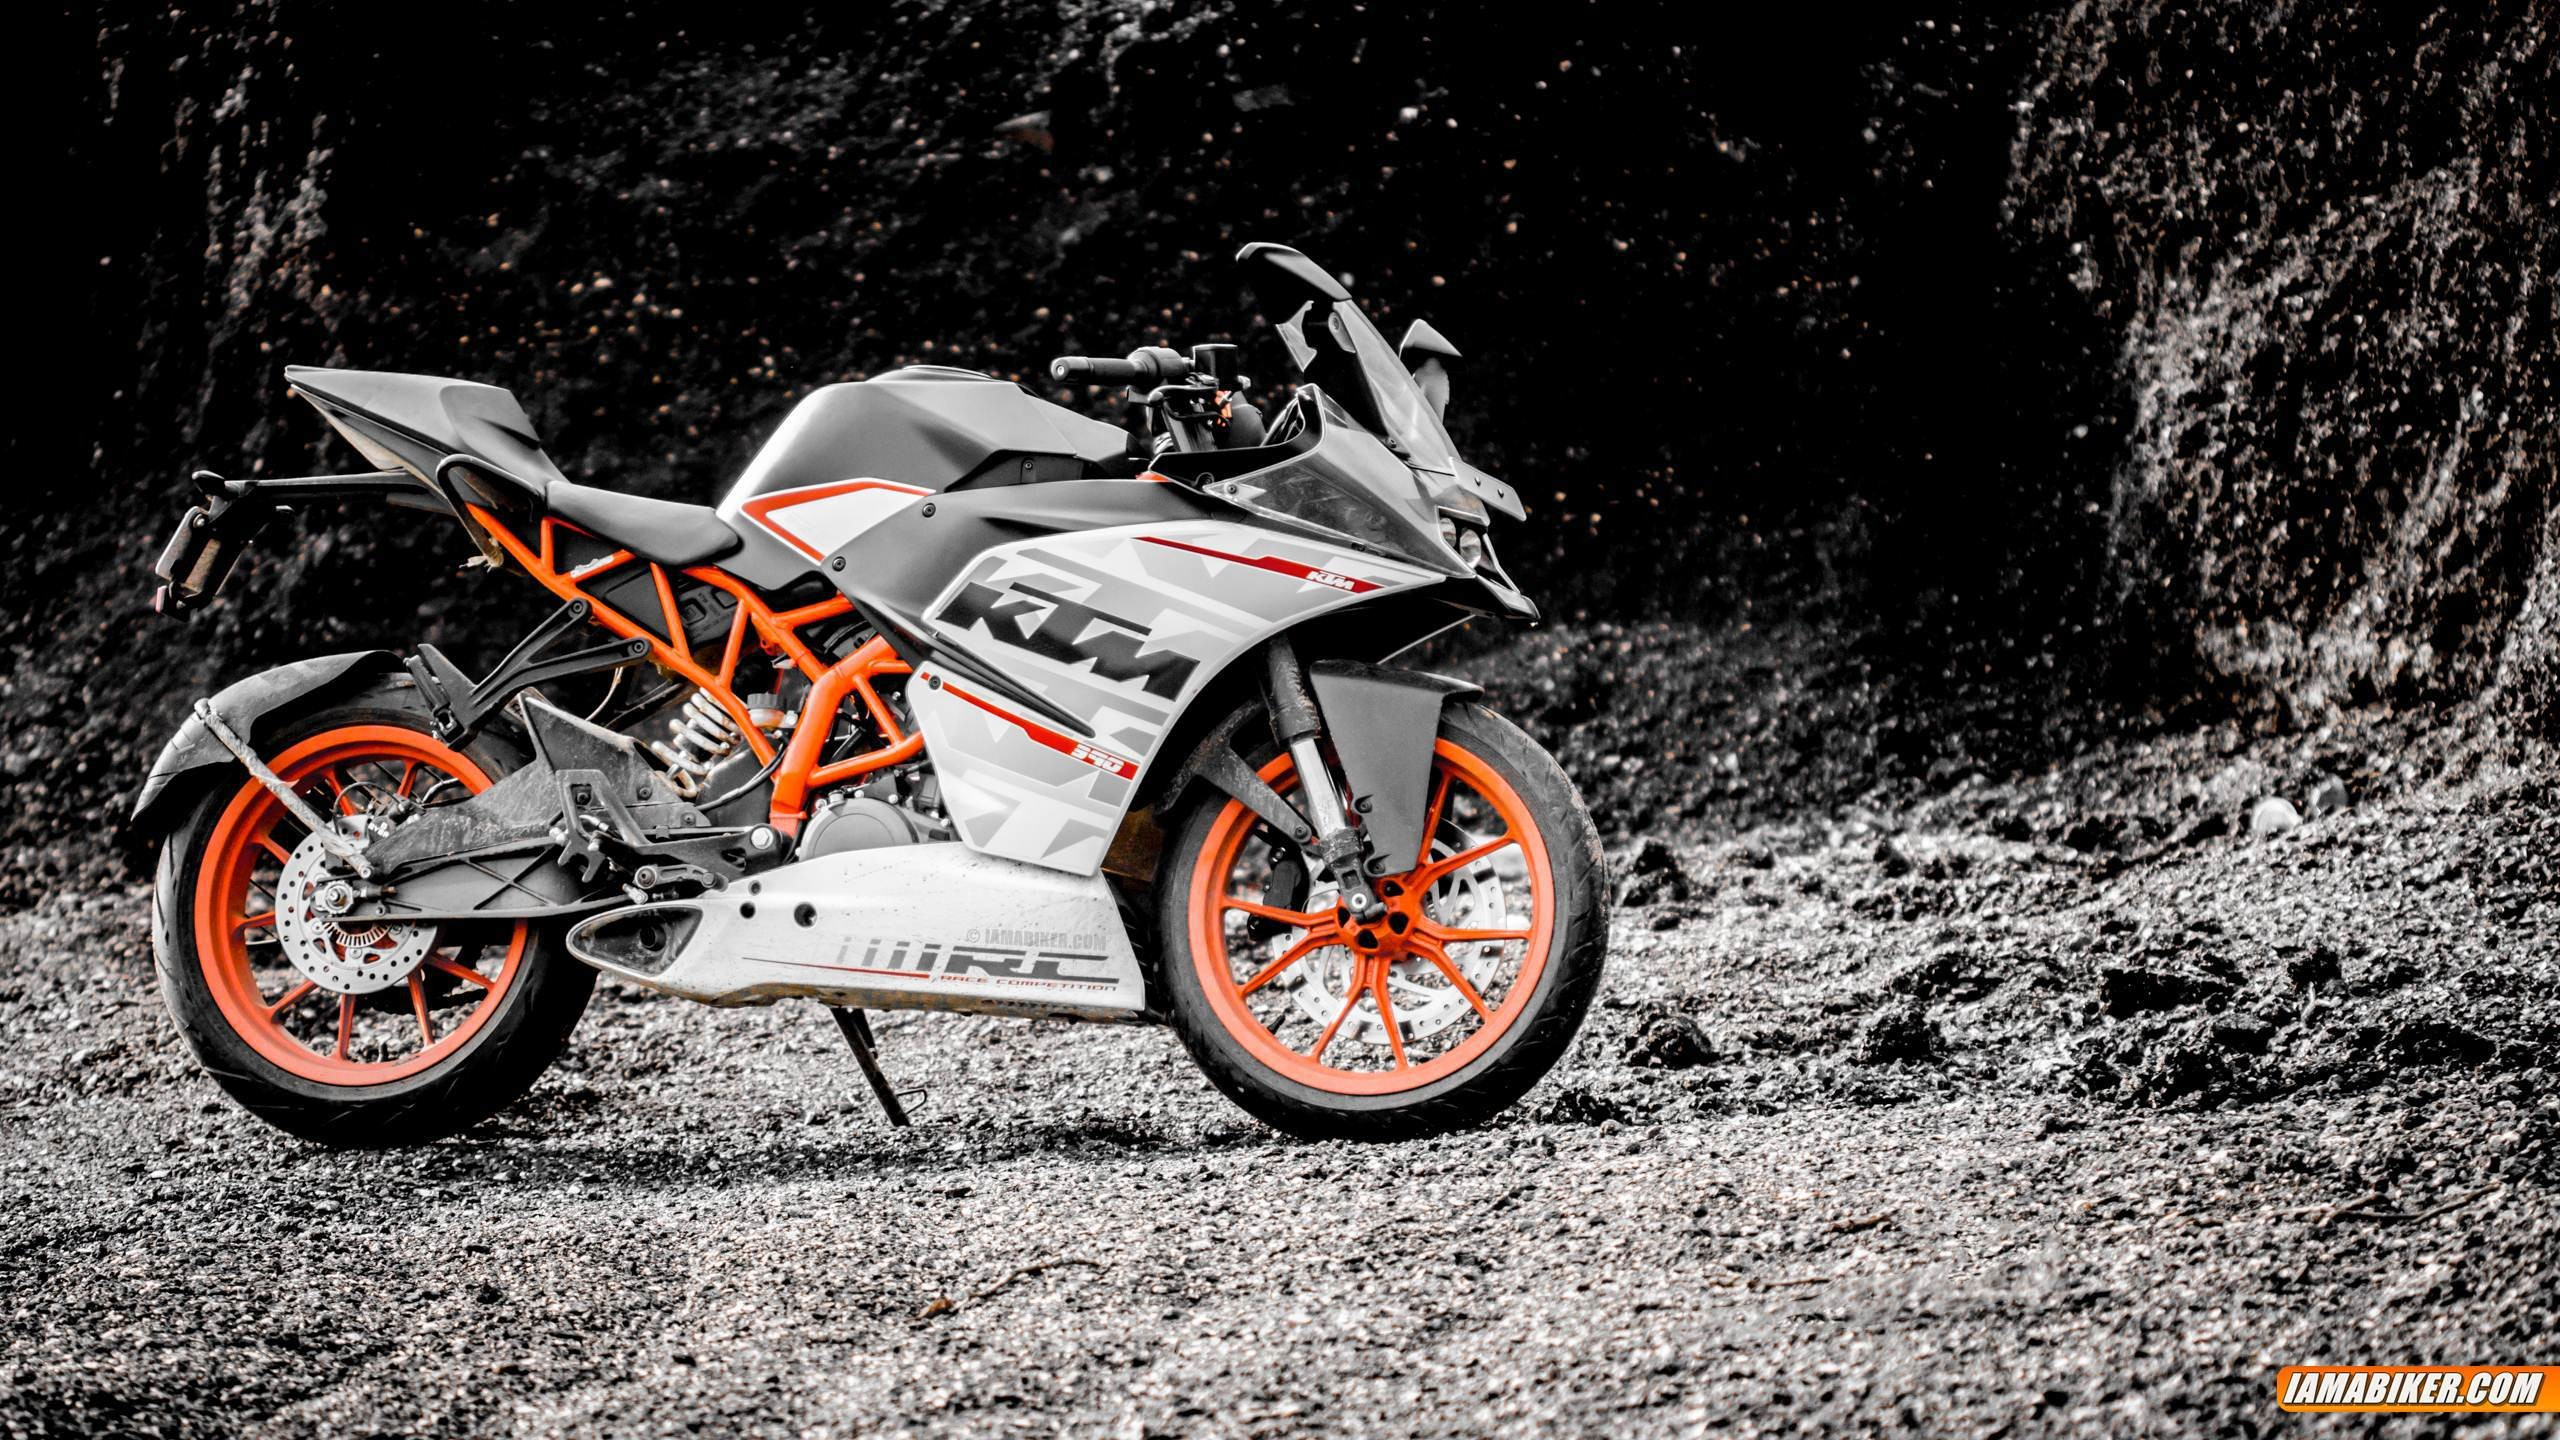 2560x1440 KTM RC 390 HD wallpapers